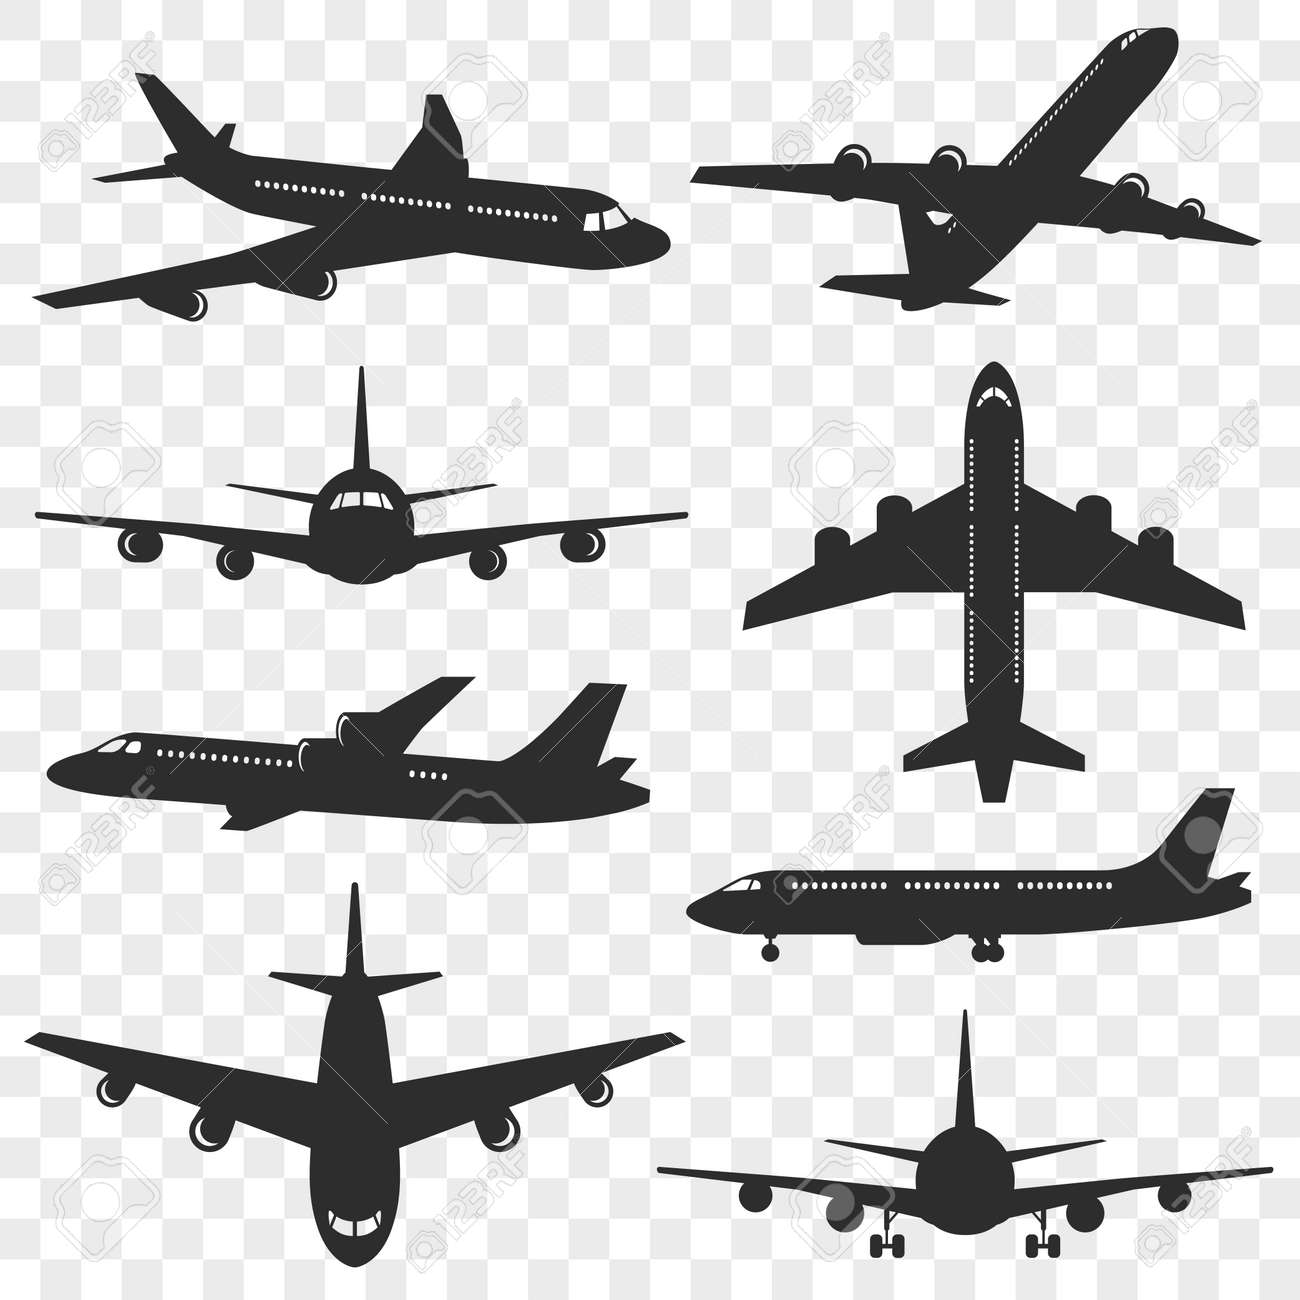 Airplanes Silhouettes Set Plane Silhouette Isolated On Transparent Royalty Free Cliparts Vectors And Stock Illustration Image 111992437 You can add this airplane silhouette to graphic of a sky or city skyline to add effect to your design. airplanes silhouettes set plane silhouette isolated on transparent